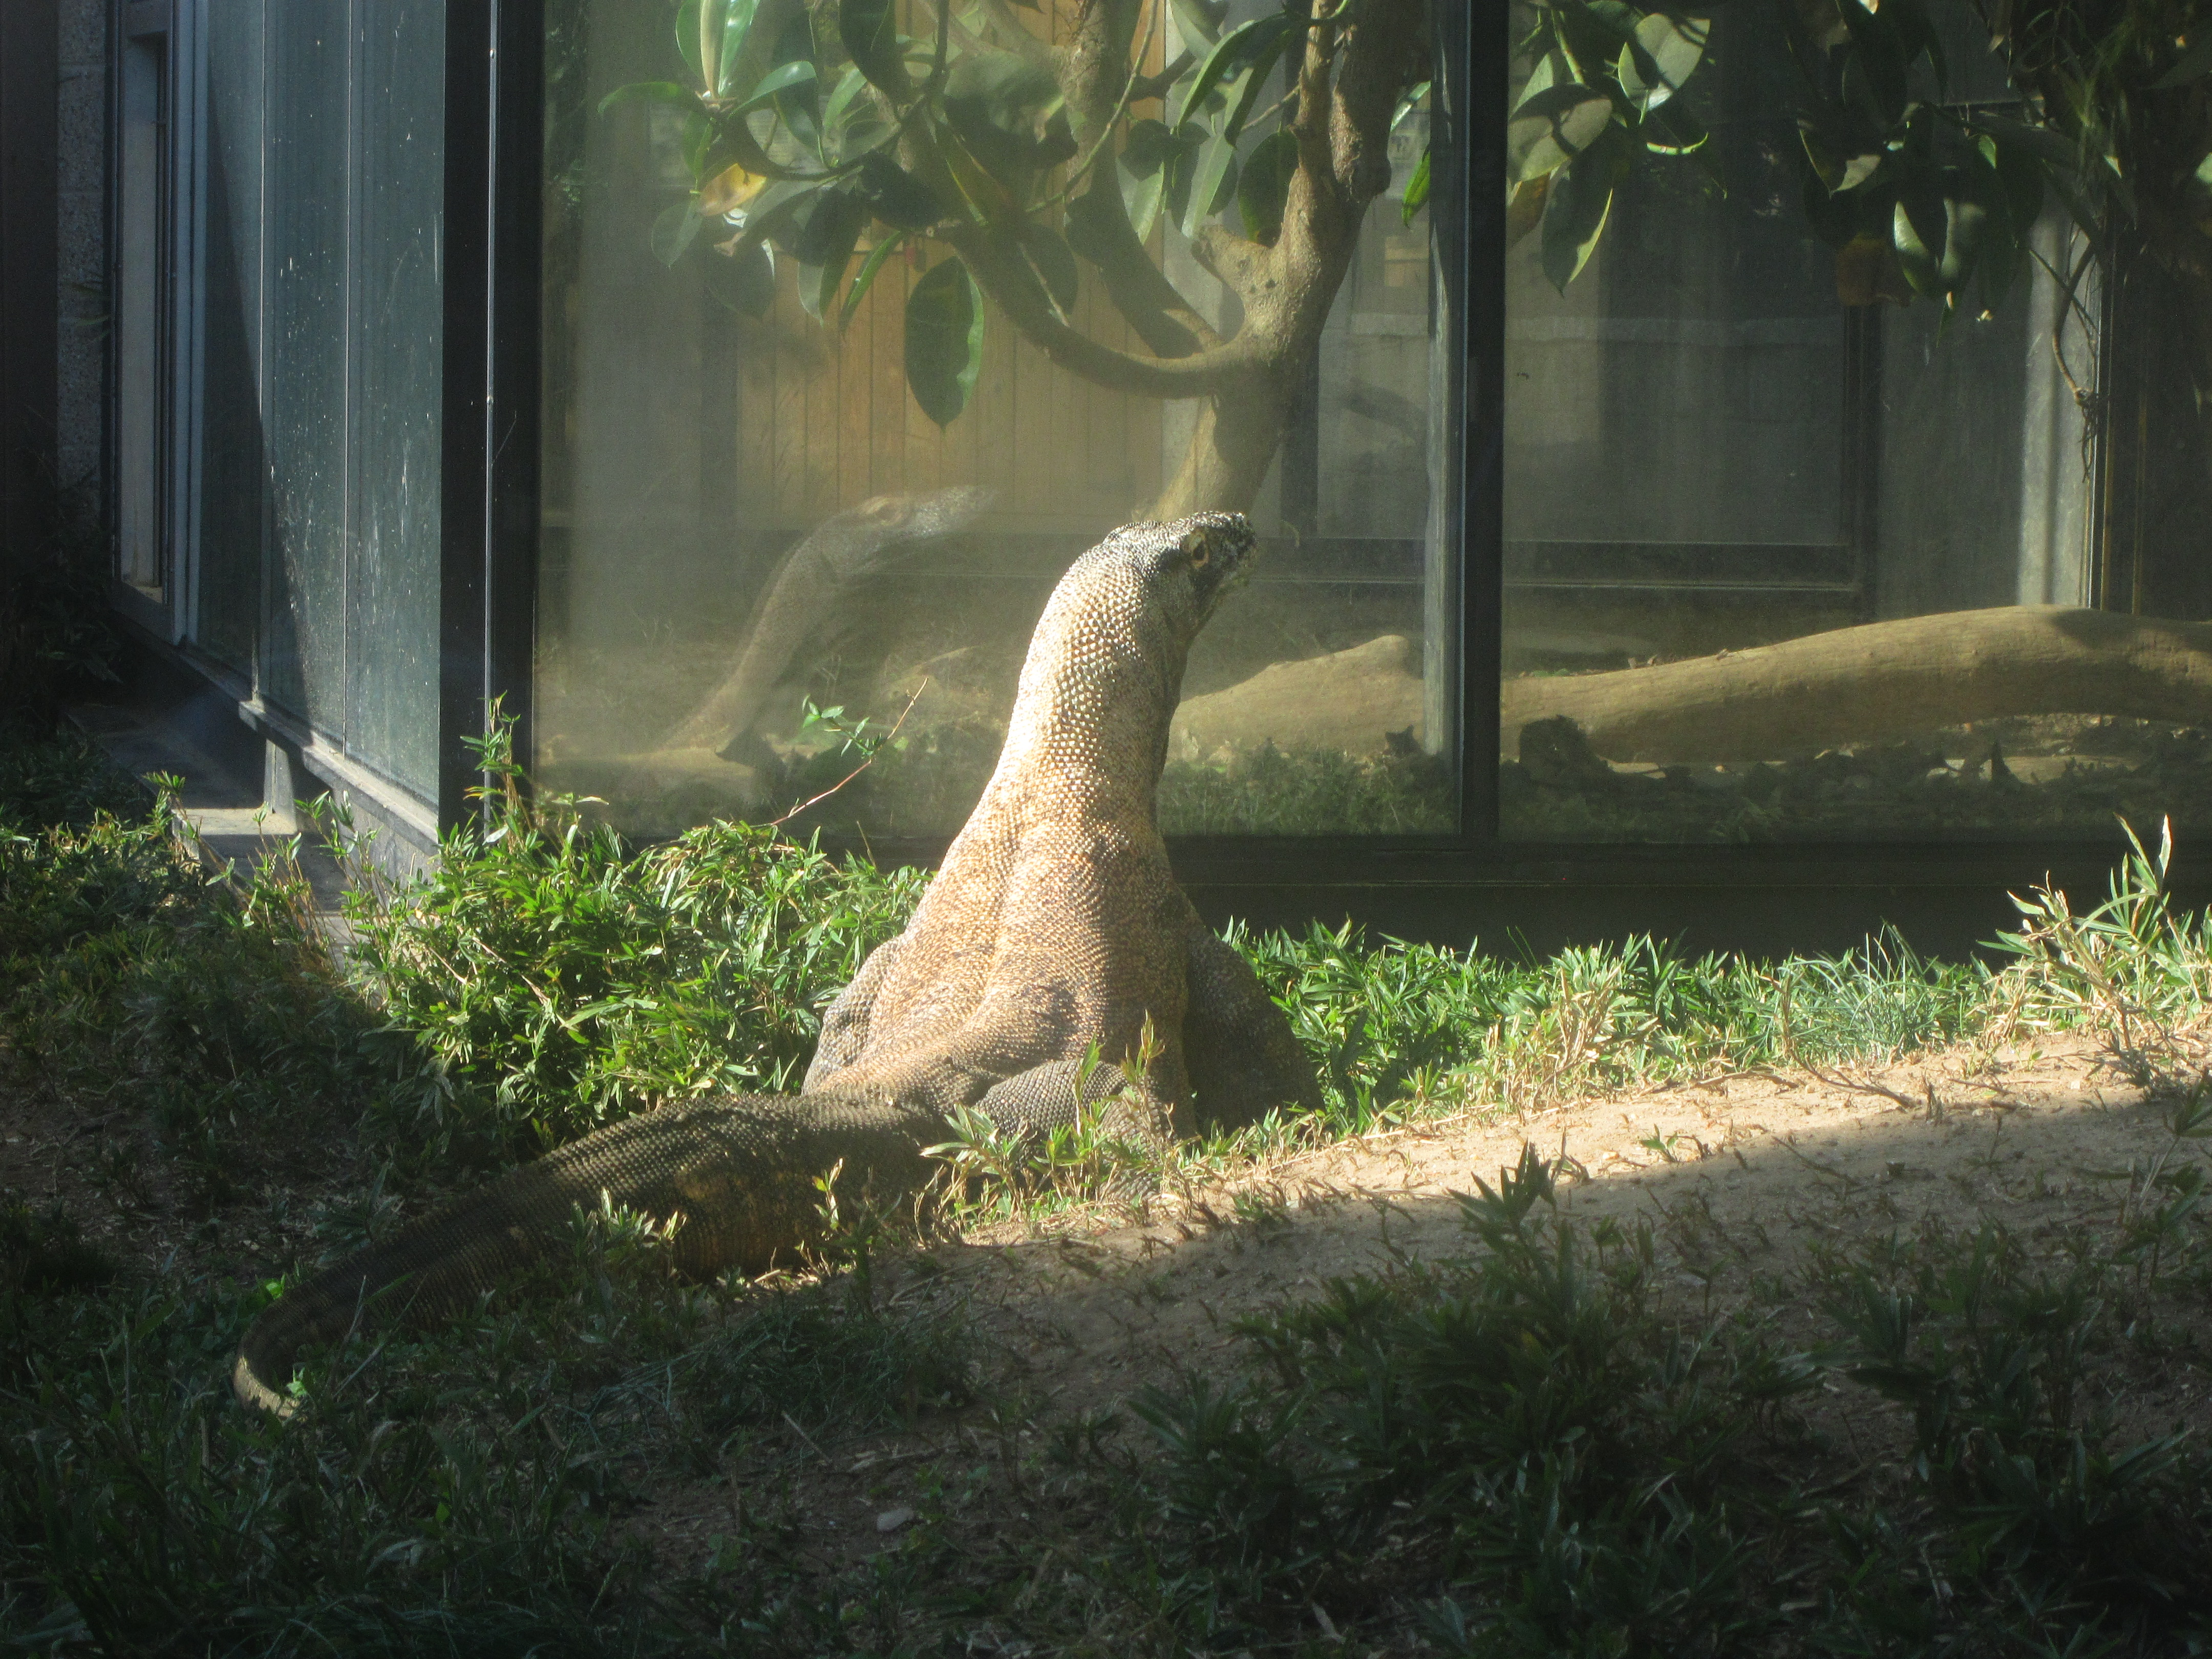 Komodo dragon taking a sunbath by AudeS